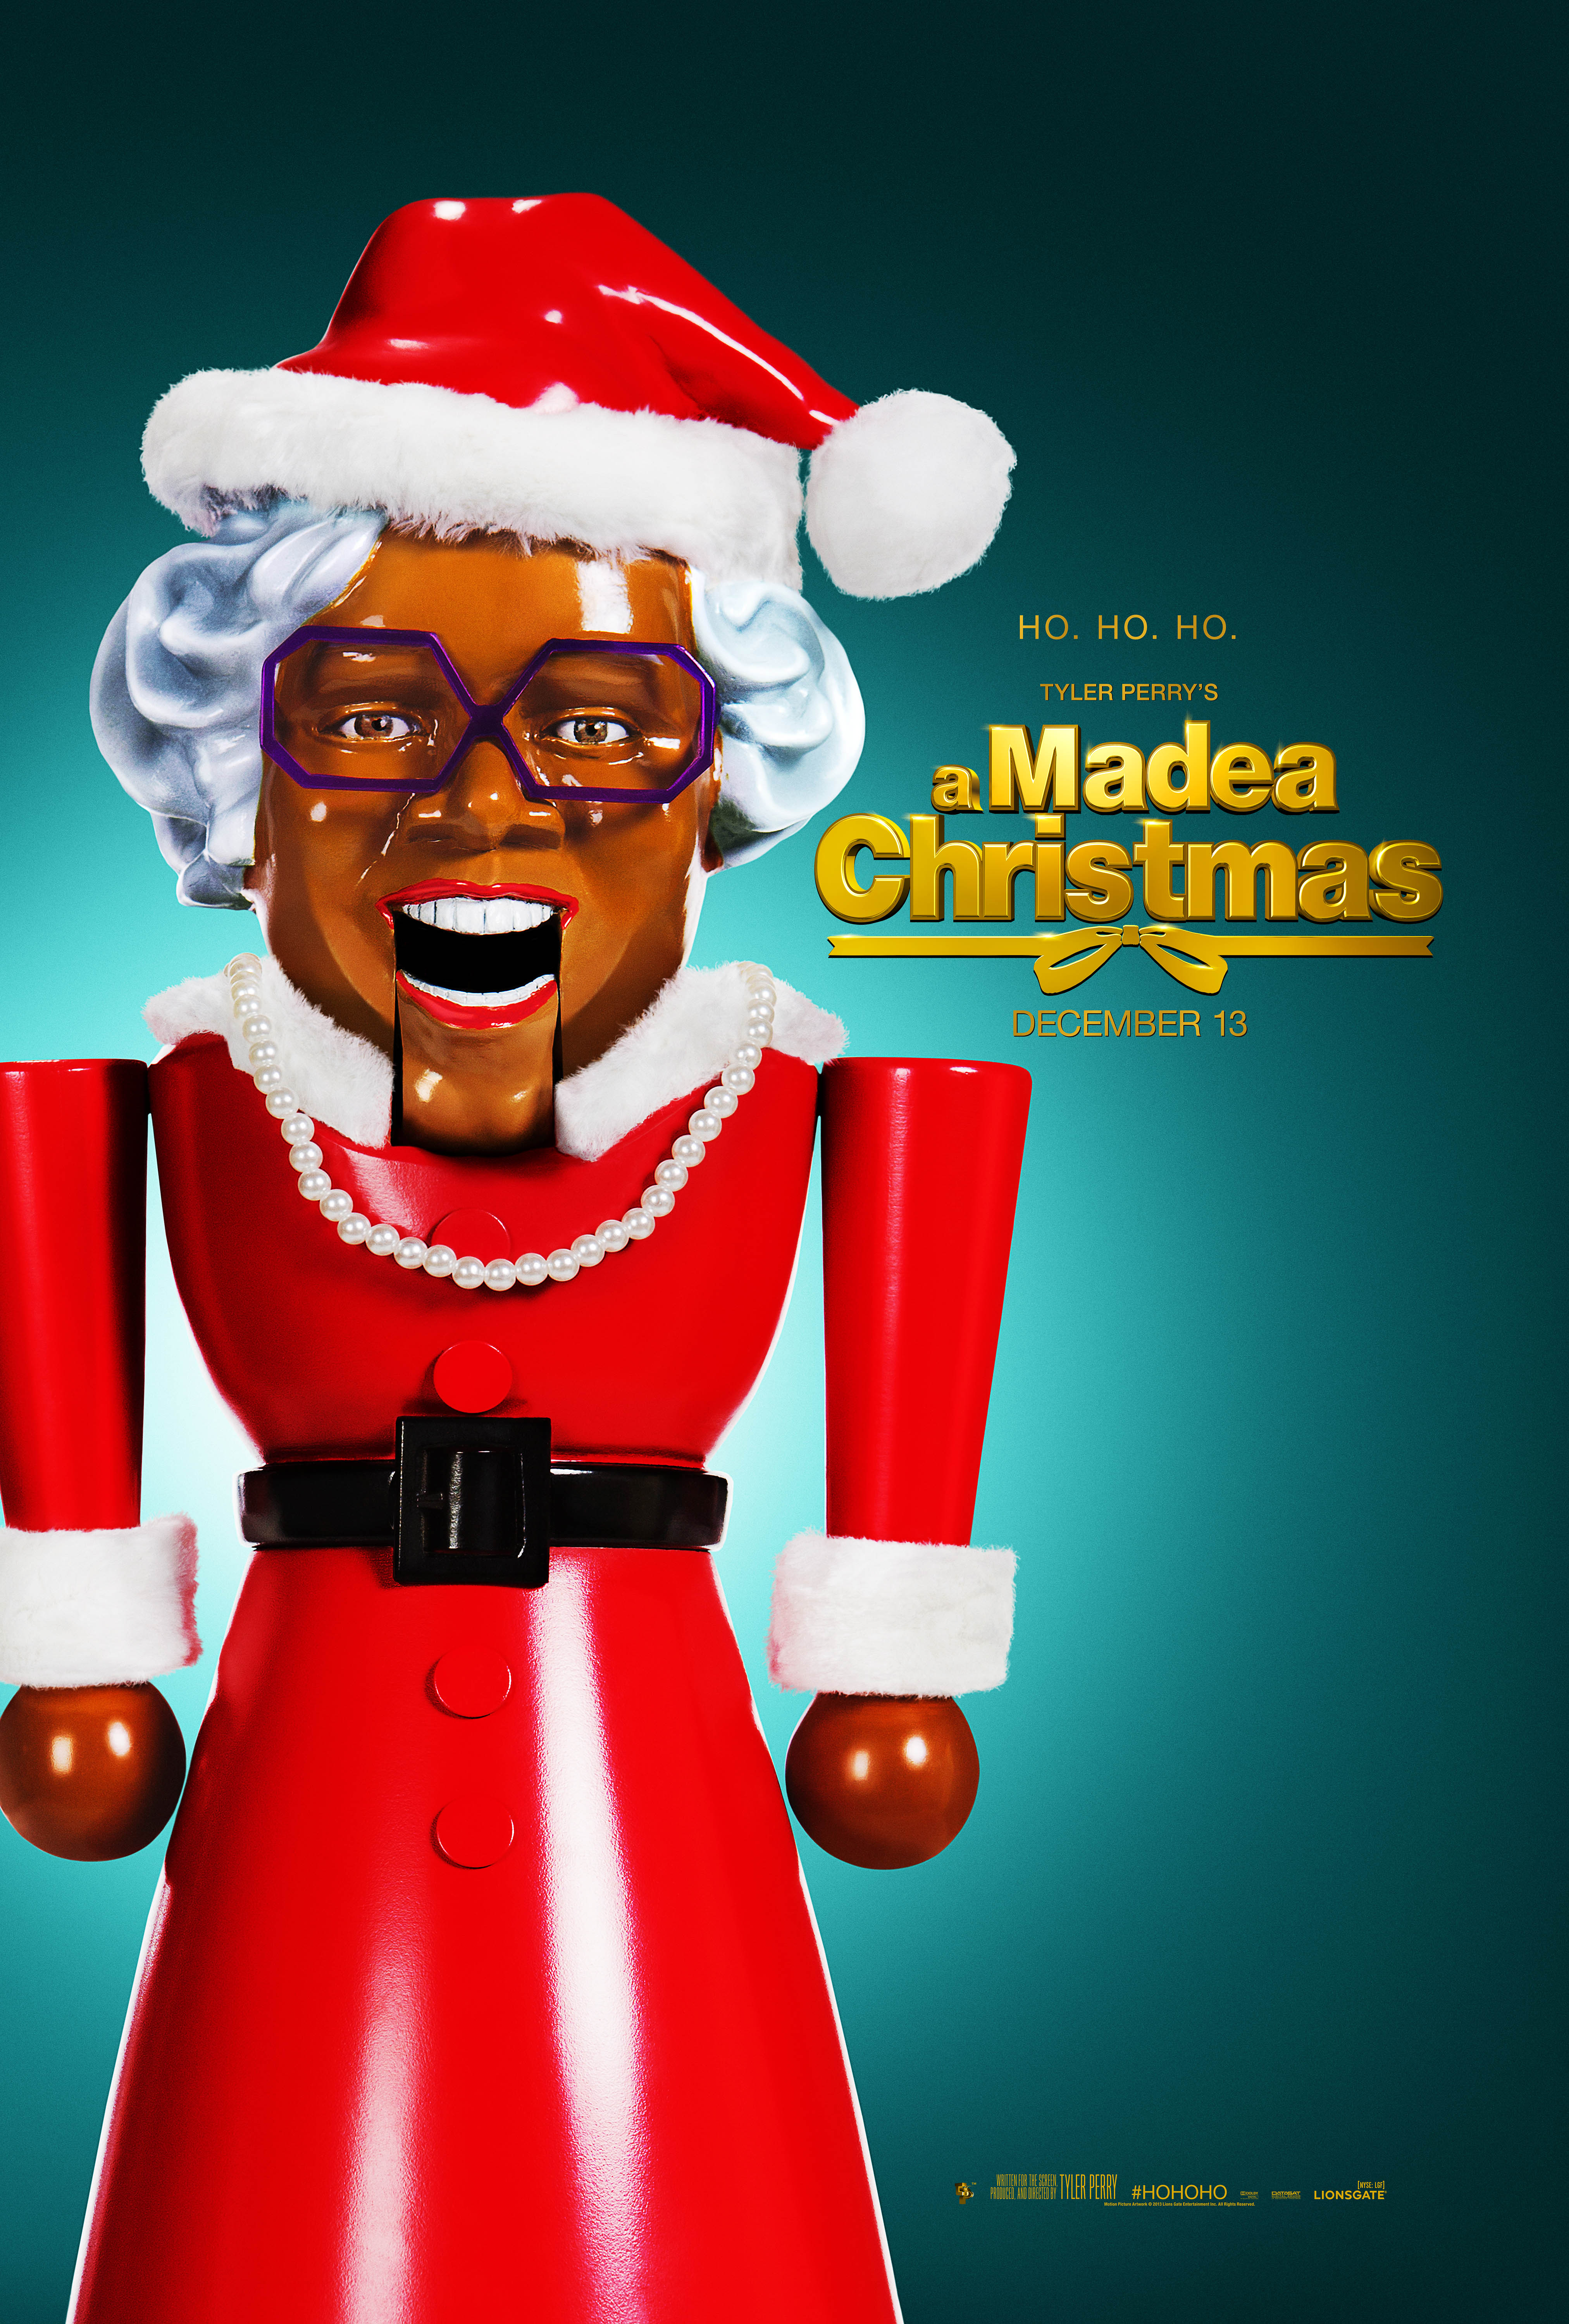 FIN04 TPAMC 1Sht Trim Tyler Perry Celebrates A Madea Christmas with New Teaser Trailer